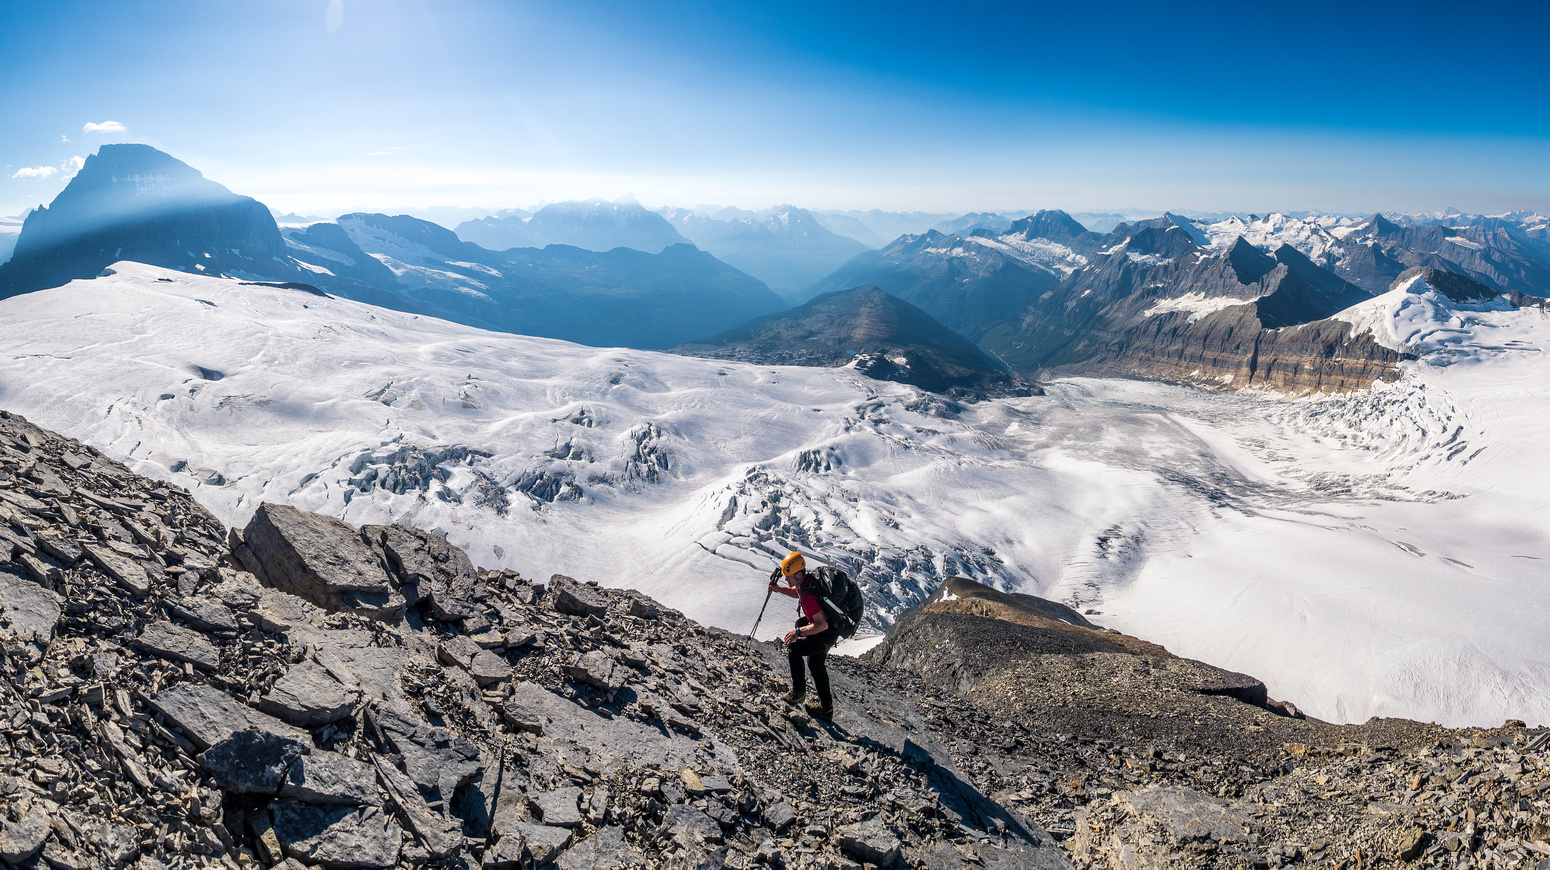 Ferenc ascends easy terrain on the south ridge with incredible views of Mount Columbia to the south and the Chess Group to the southwest.